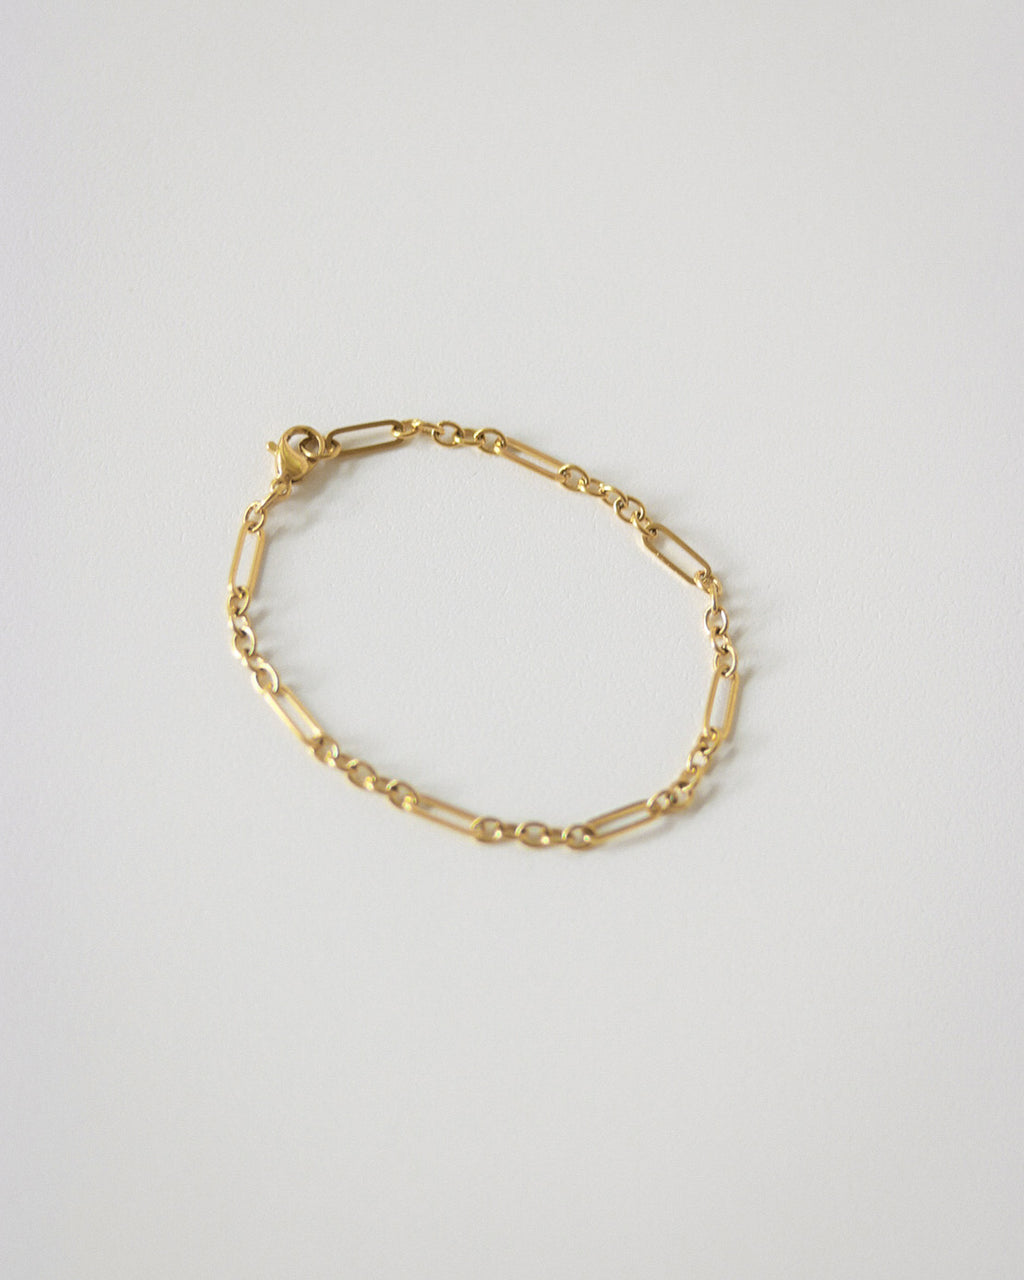 Radical Chain Bracelet in Gold by The Hexad